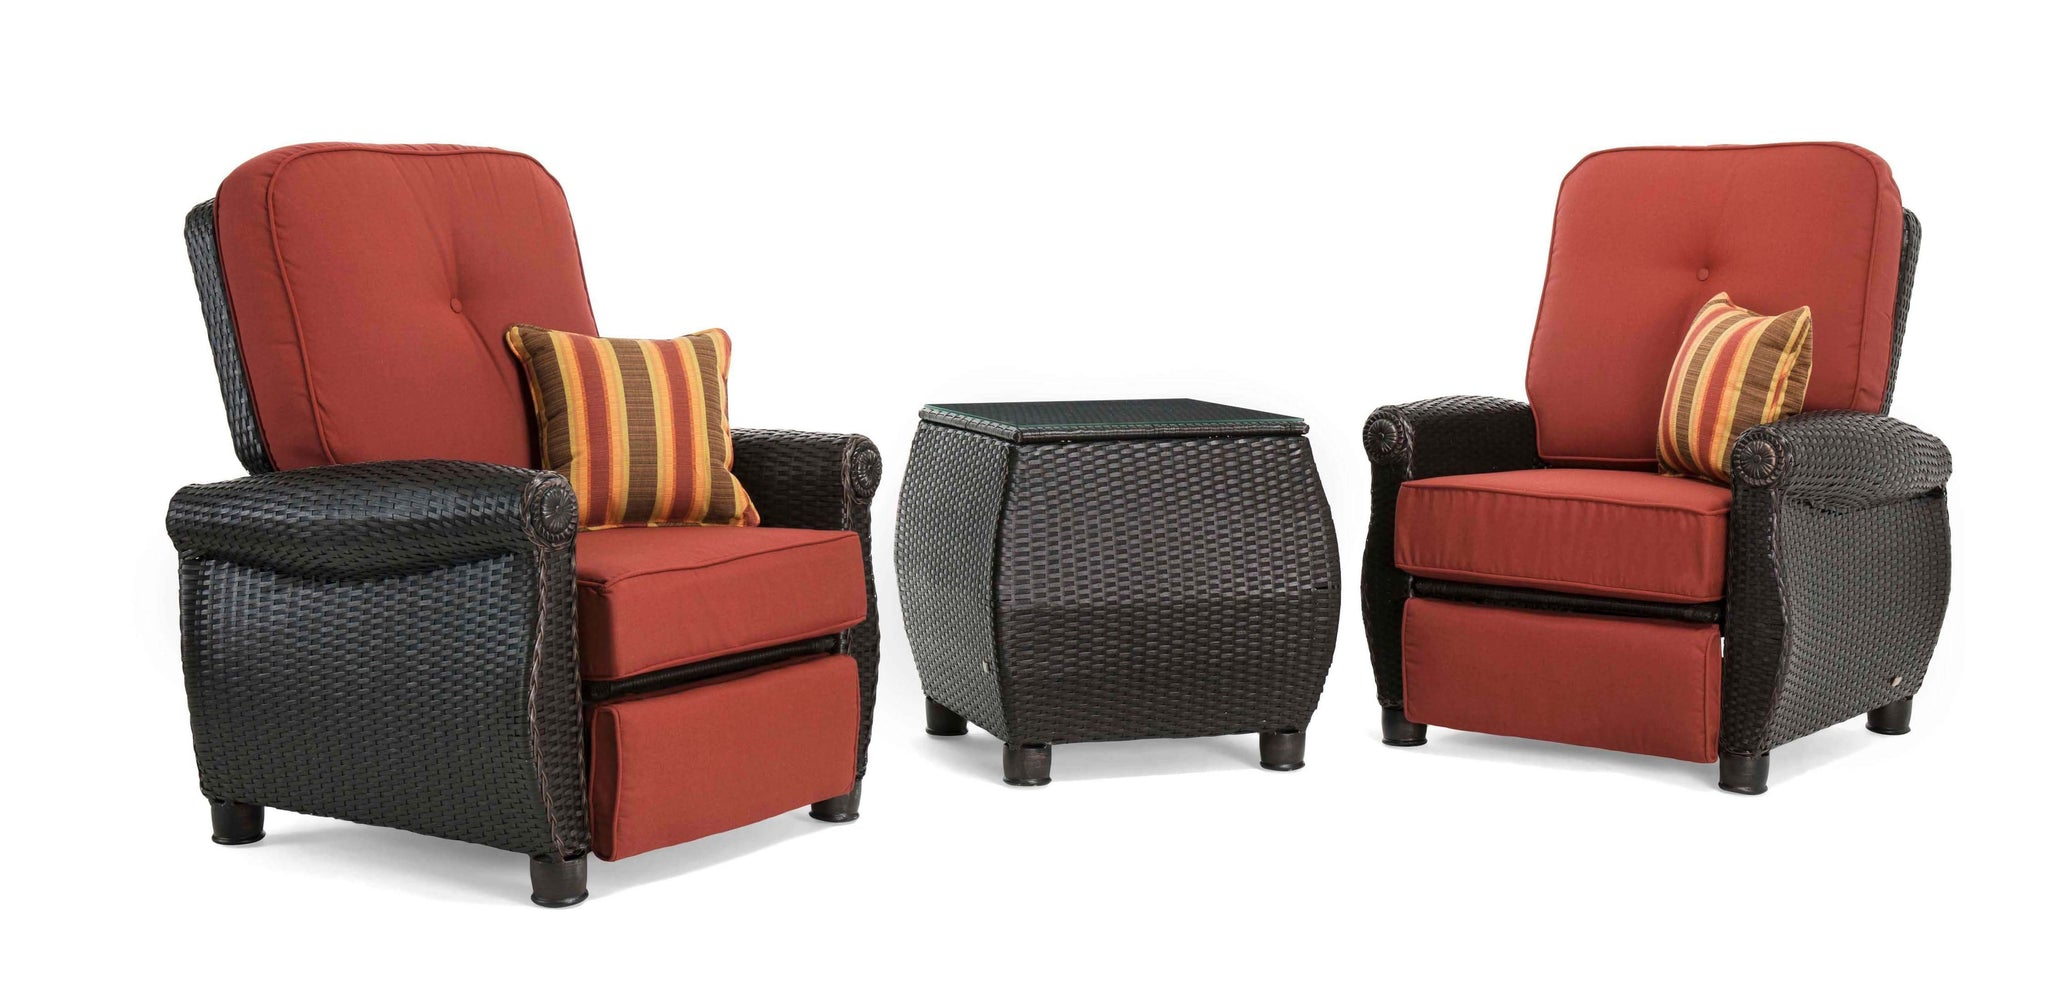 Breckenridge Red 3 Pc Patio Furniture Set Two Recliners Side